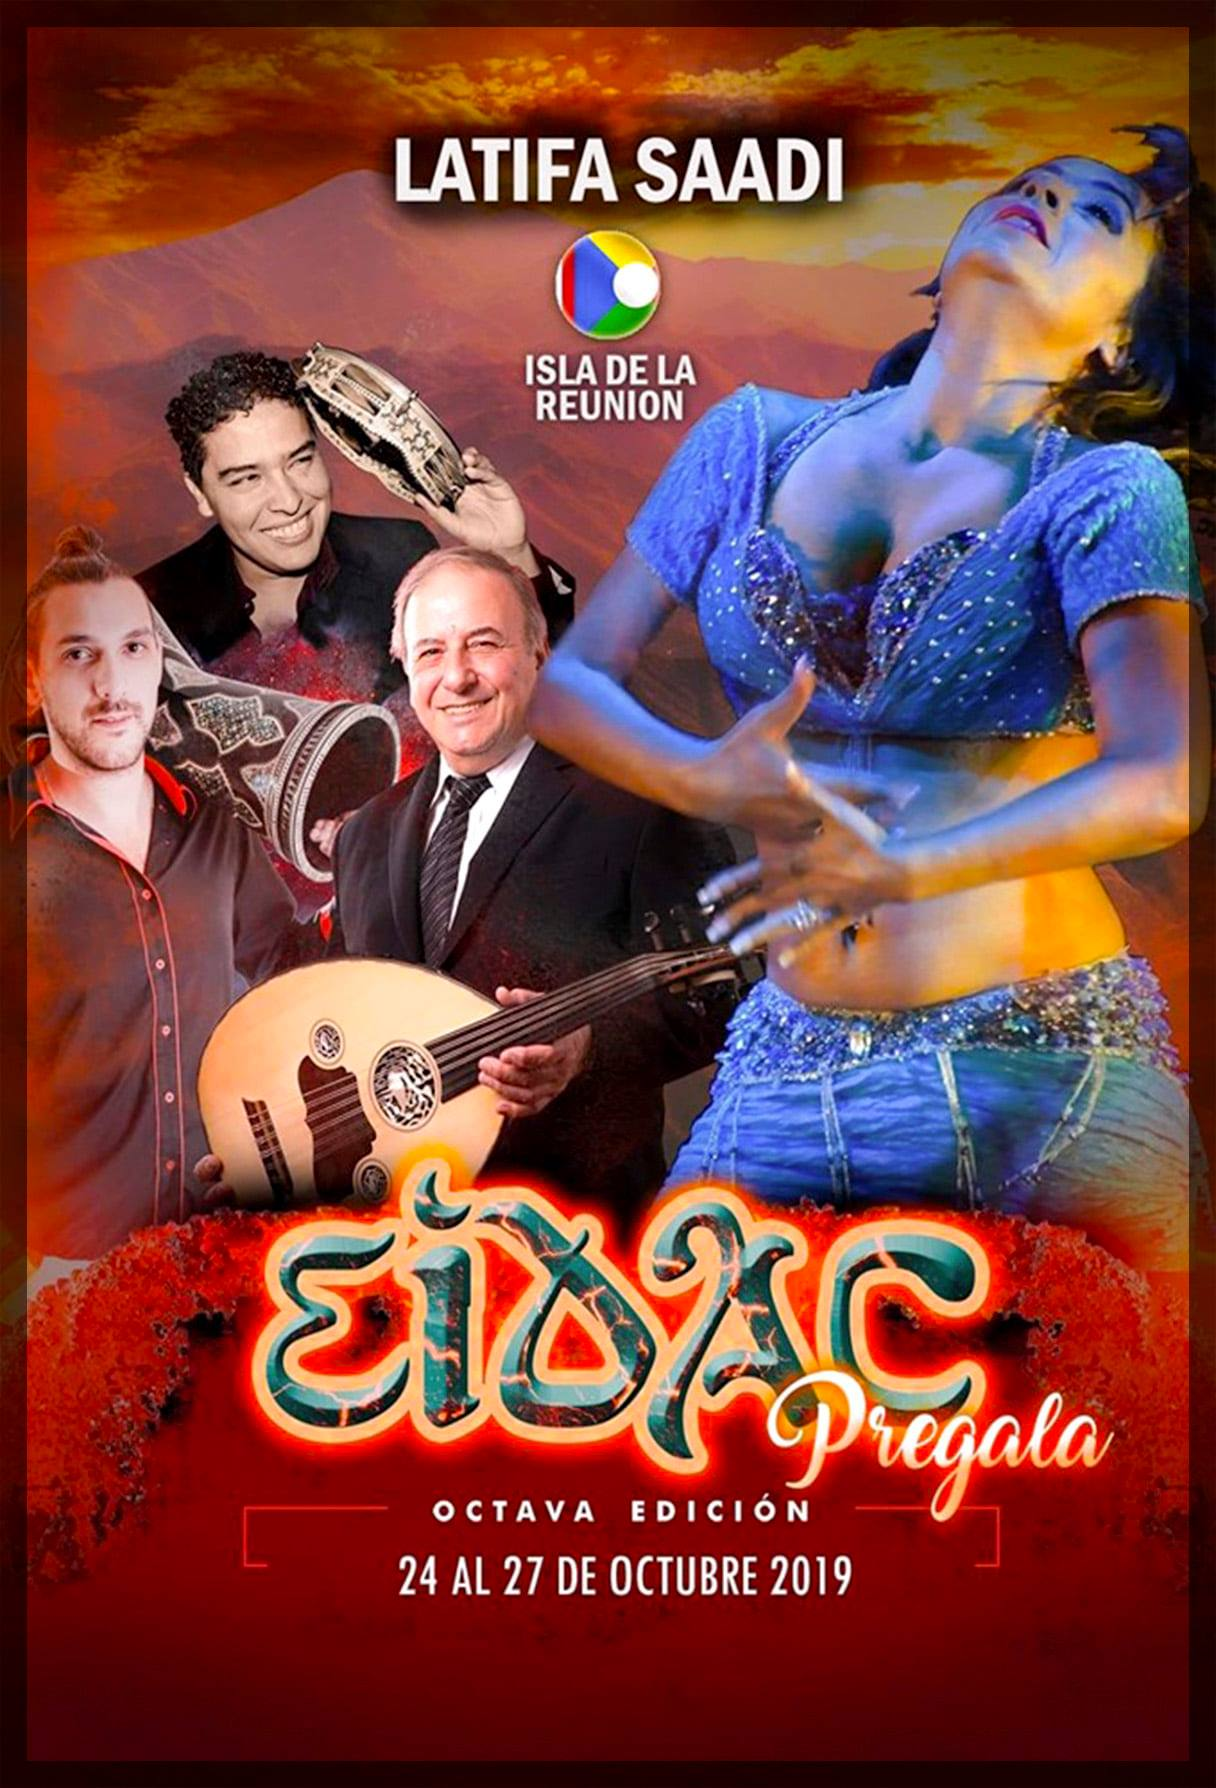 Latifa Saadi au Festival EIDAC 2019 – Cancun, Mexique